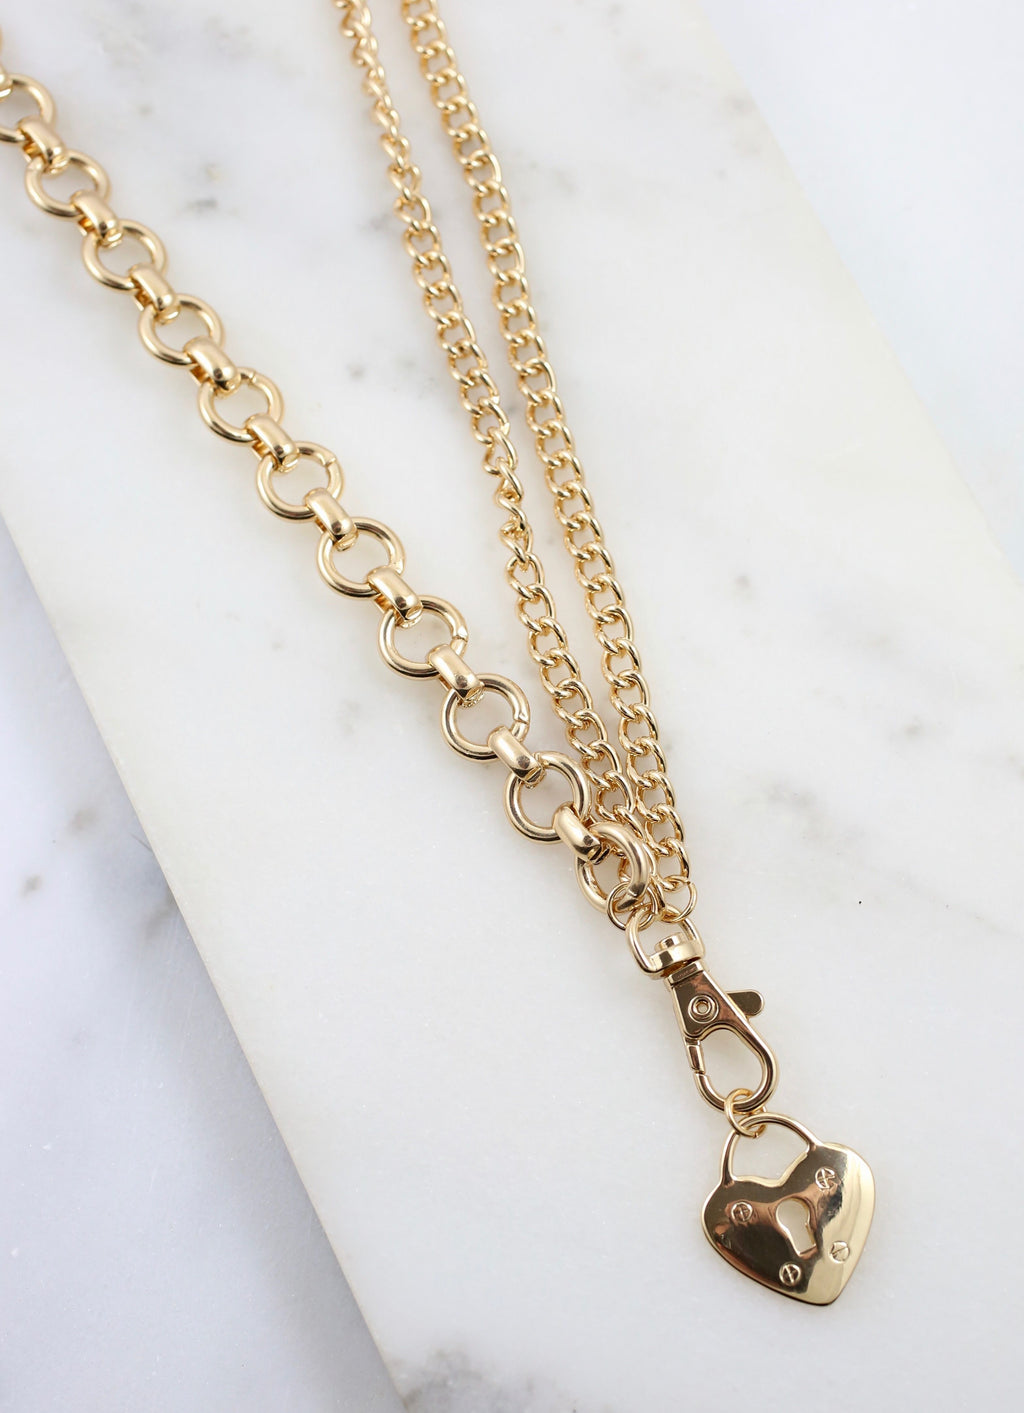 Lange Link Necklace with Heart Charm Gold - Caroline Hill